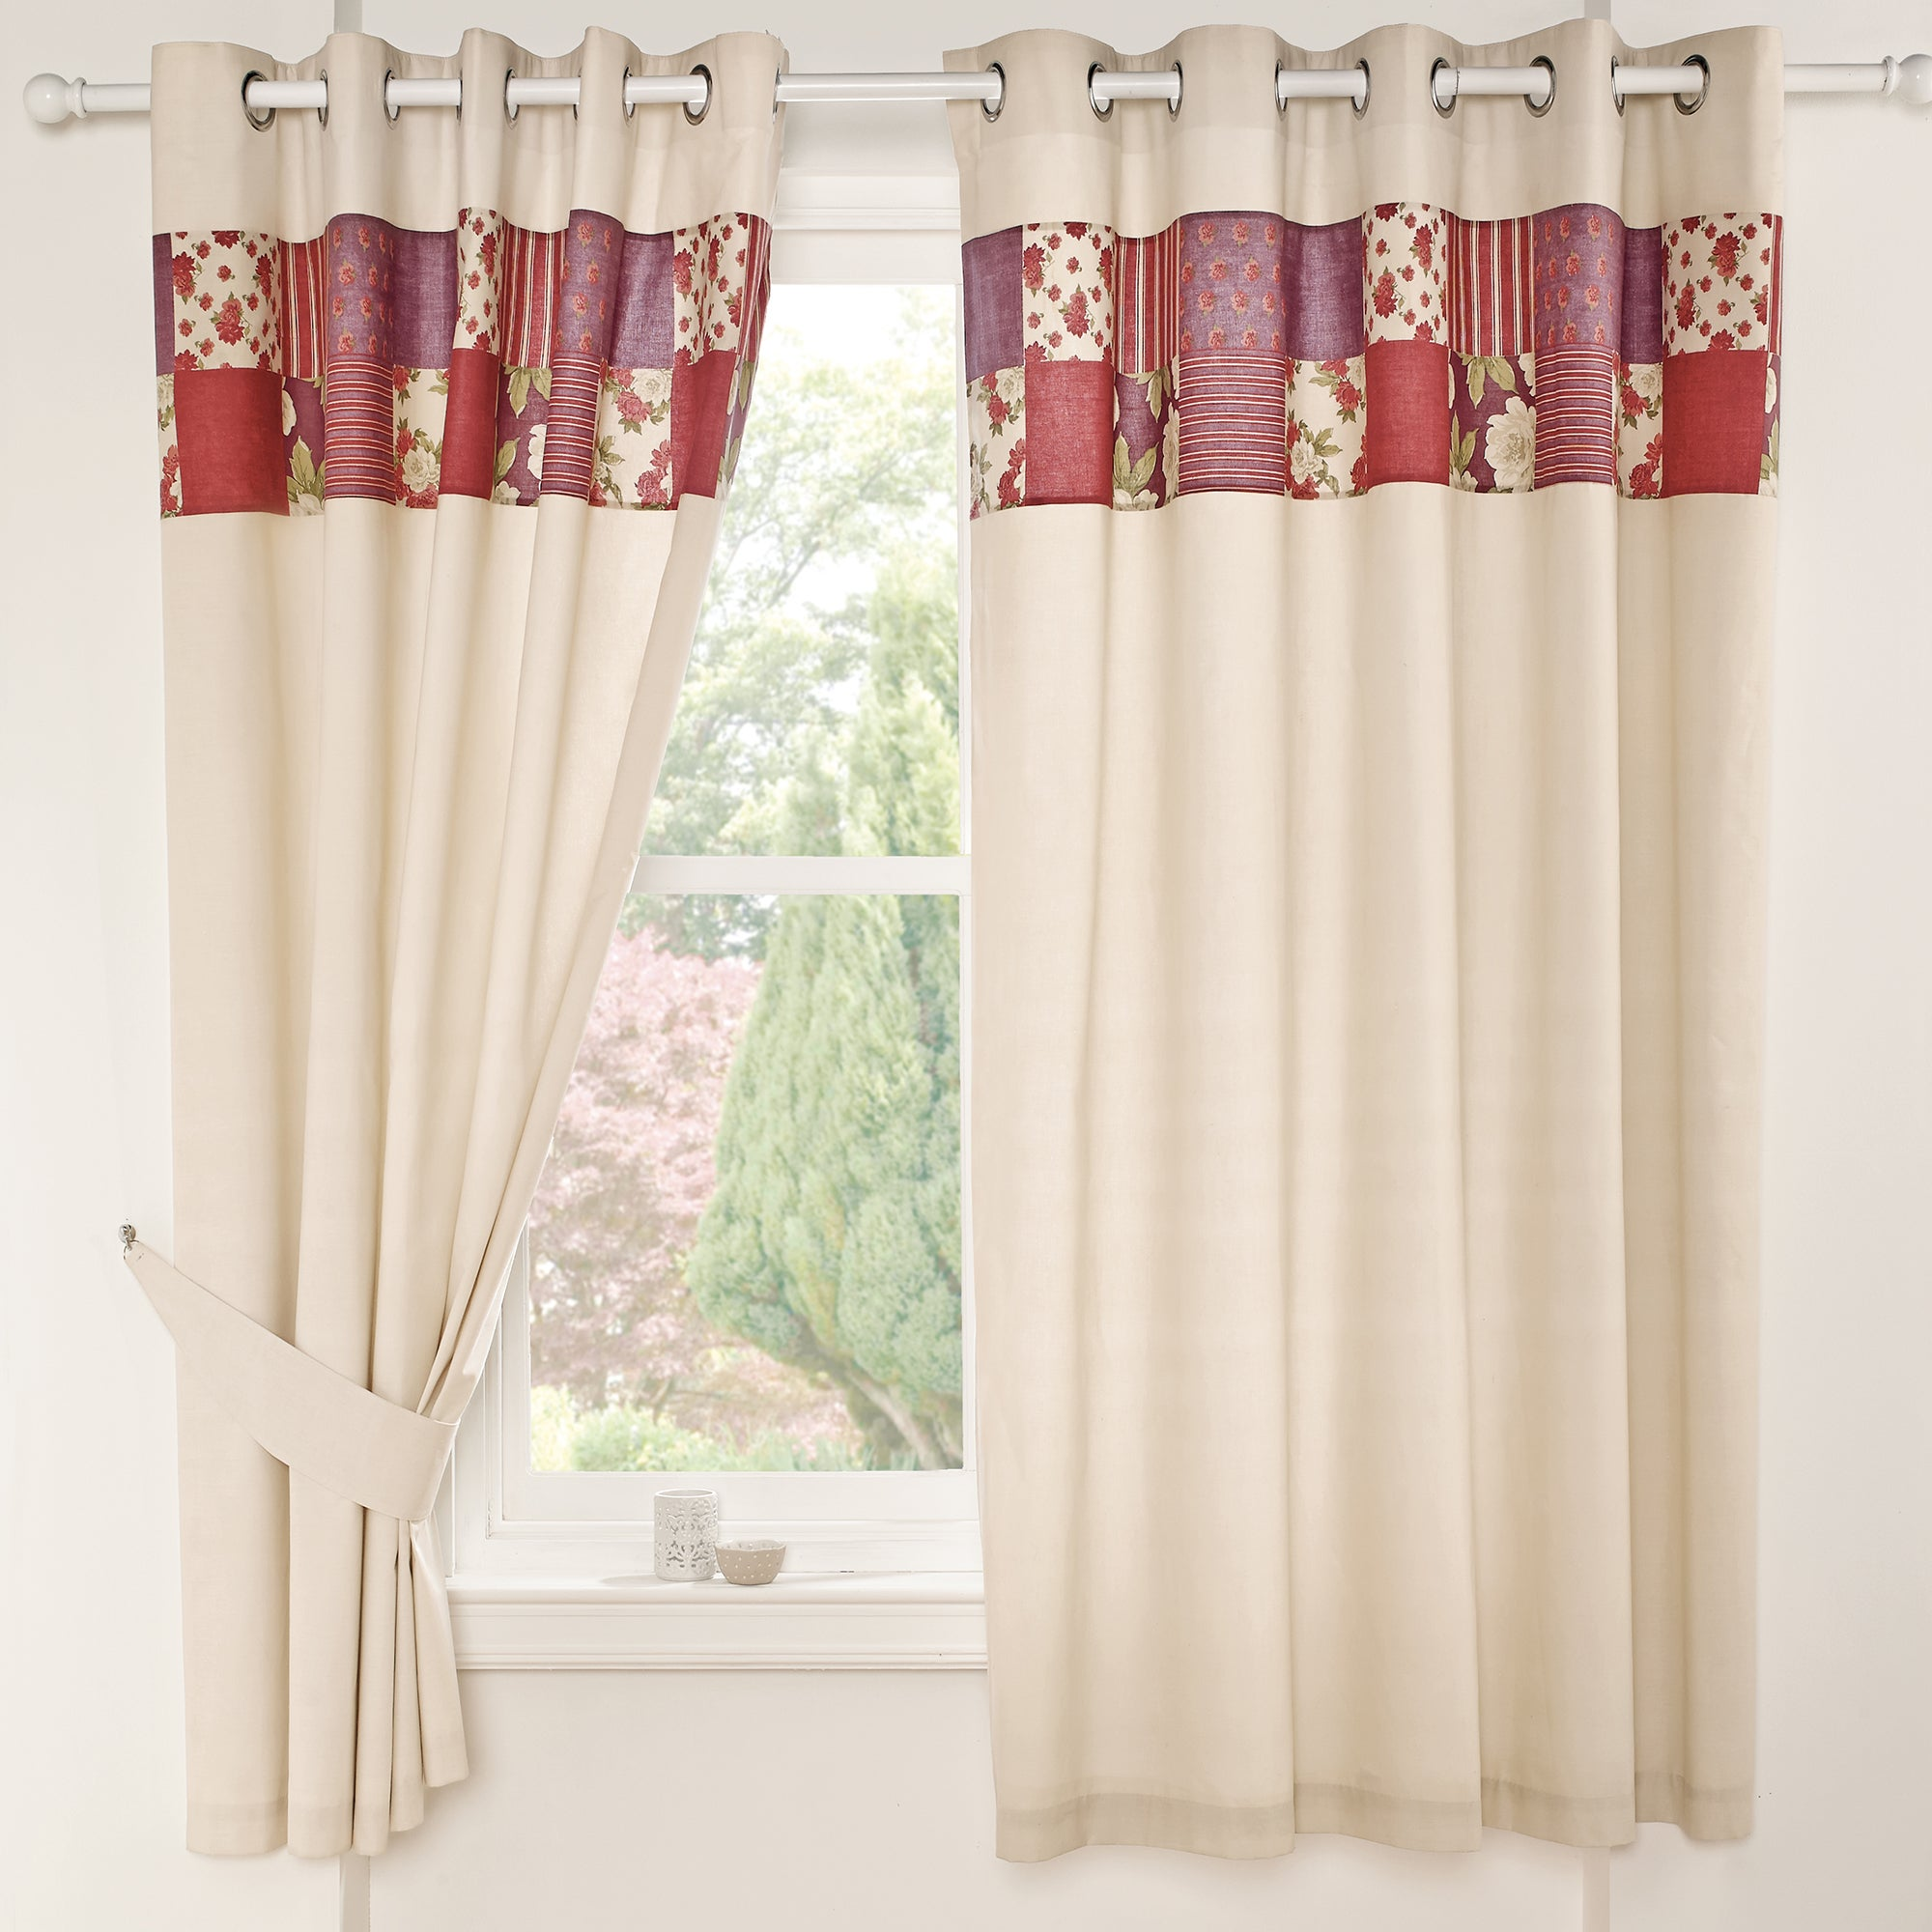 Rose Aurelia Thermal Eyelet Curtains